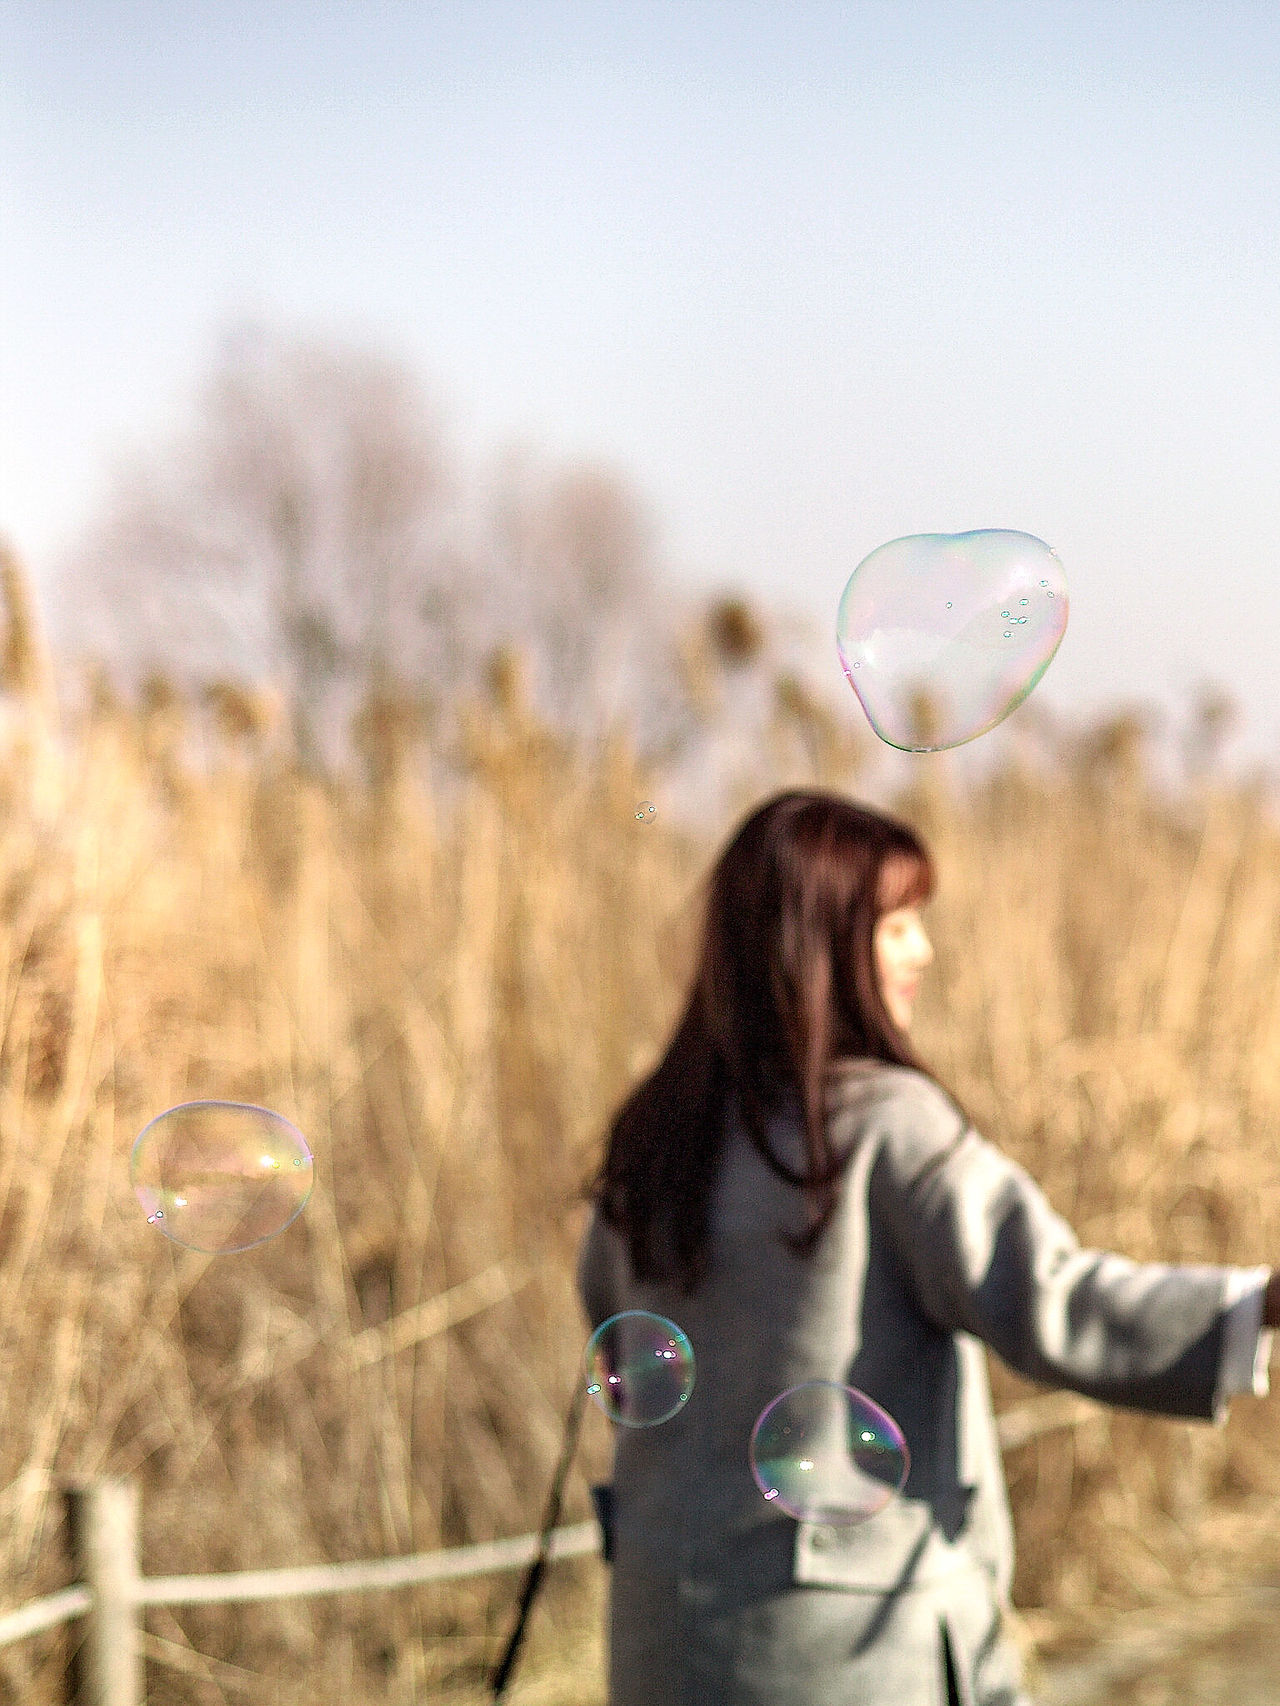 Bubble Wand Dreaming Bubbles Close-up Sunlight Snapshot Feeling Good Feeling Inspired Windy Day Slow Motion Go Away